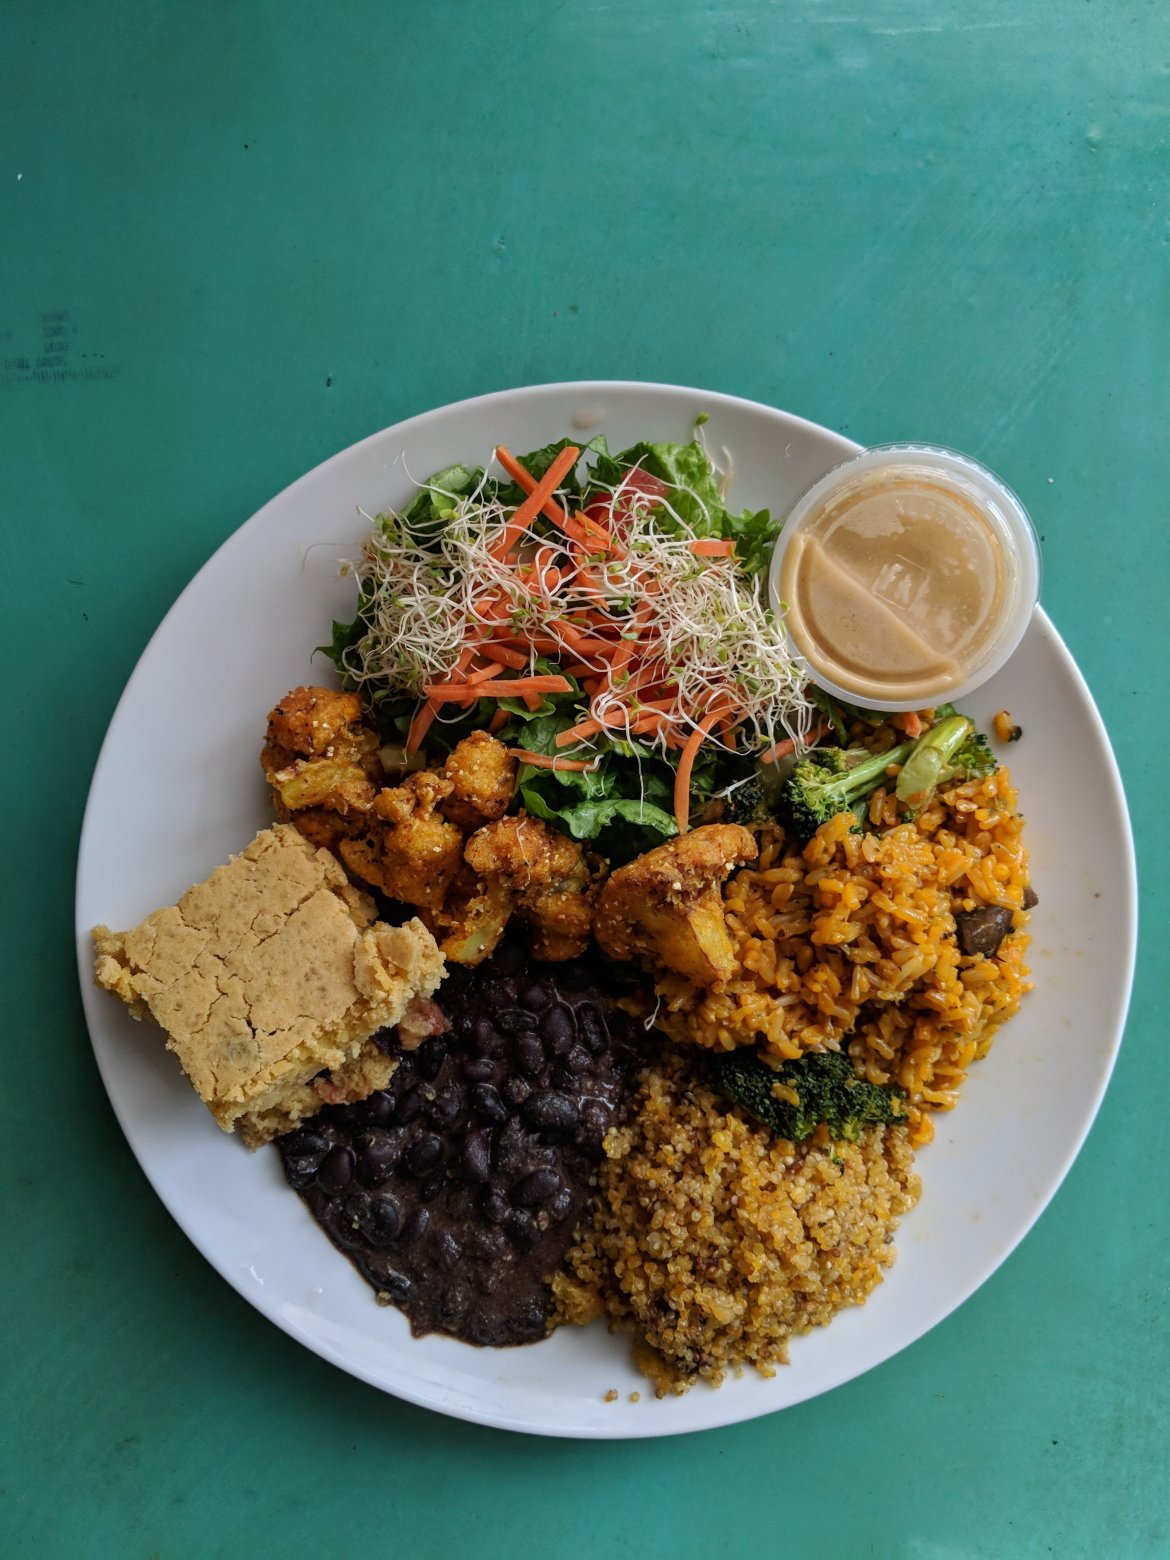 Vegan Haven vegan restaurant in St Croix